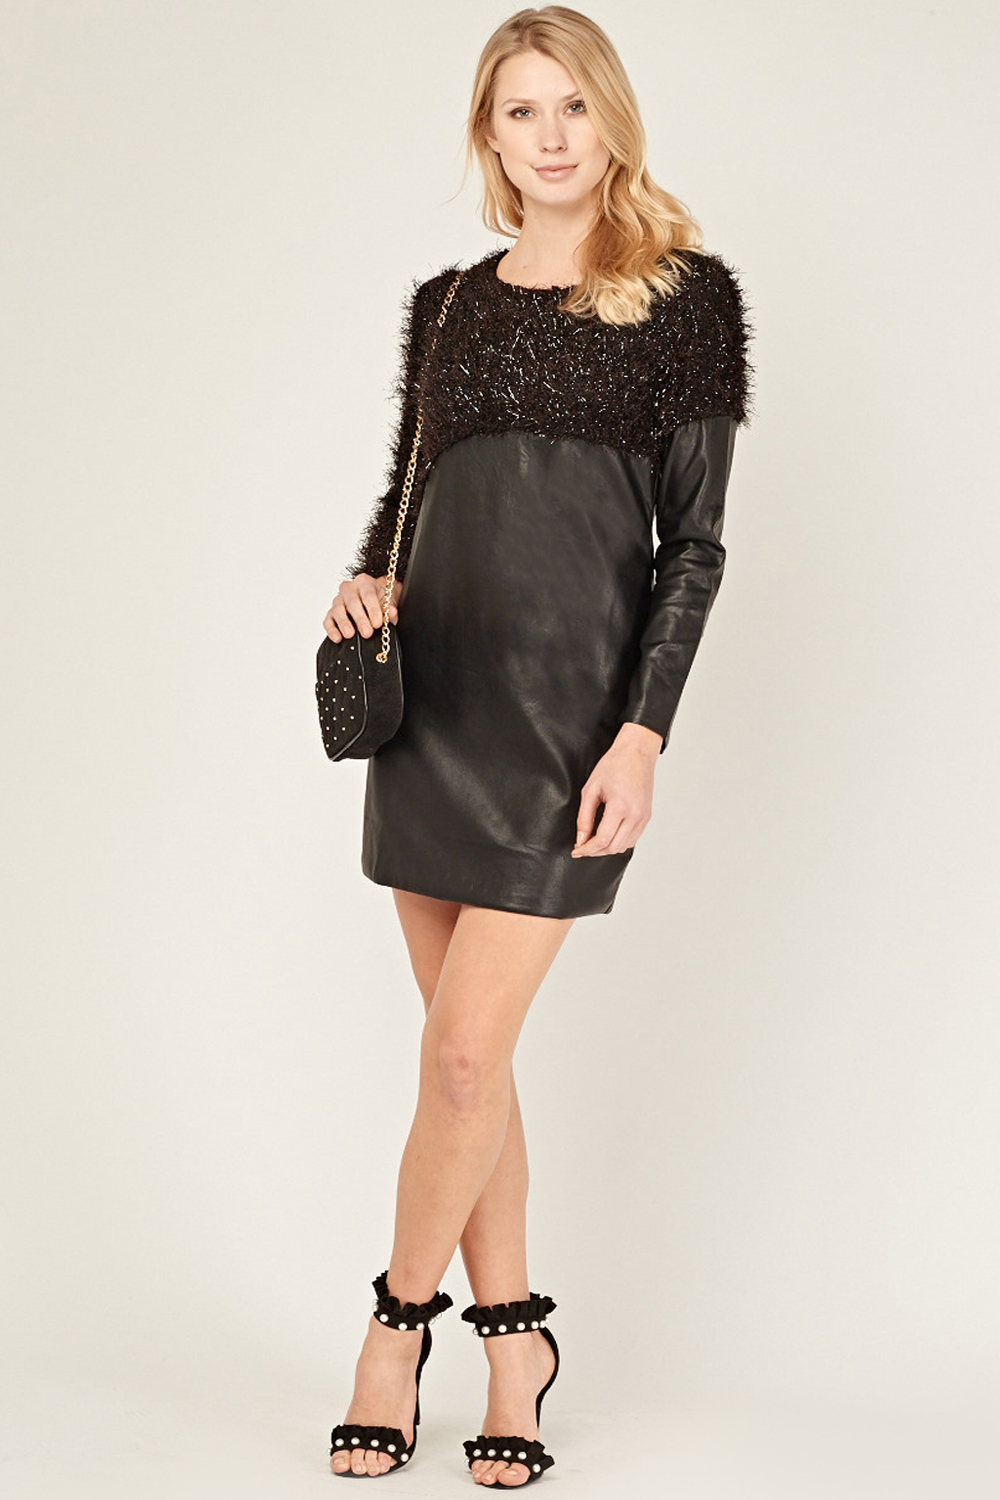 c51651de865 Leather Look Dress With Tinsel - Black - Just £5